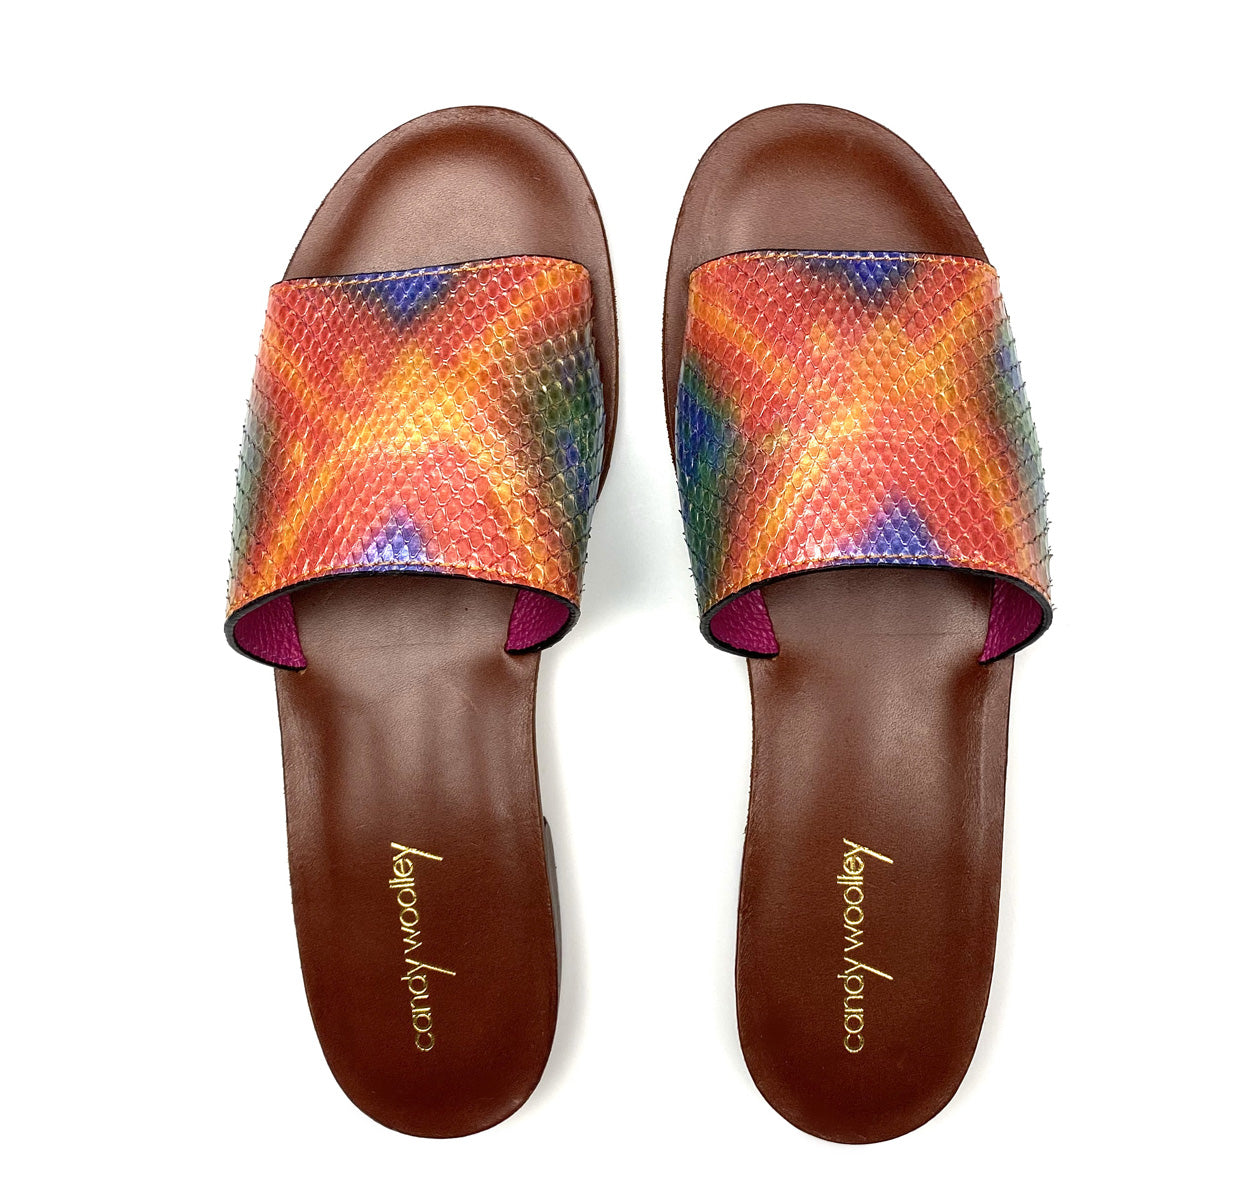 Multicolor Snakeskin Flat Slide Sandals. Sizes 6-11. [NEW: NON-SLIP & SOLE PROTECTOR]